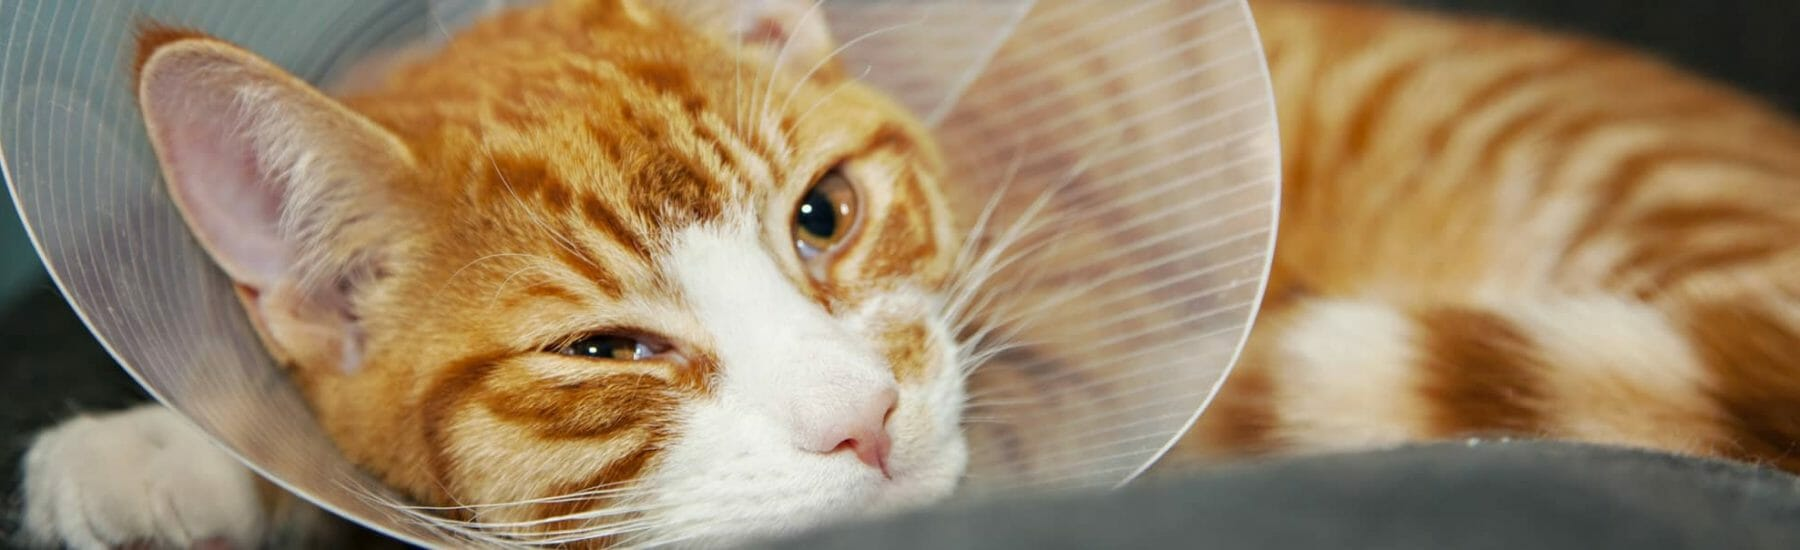 A orange tabby cat in a cone